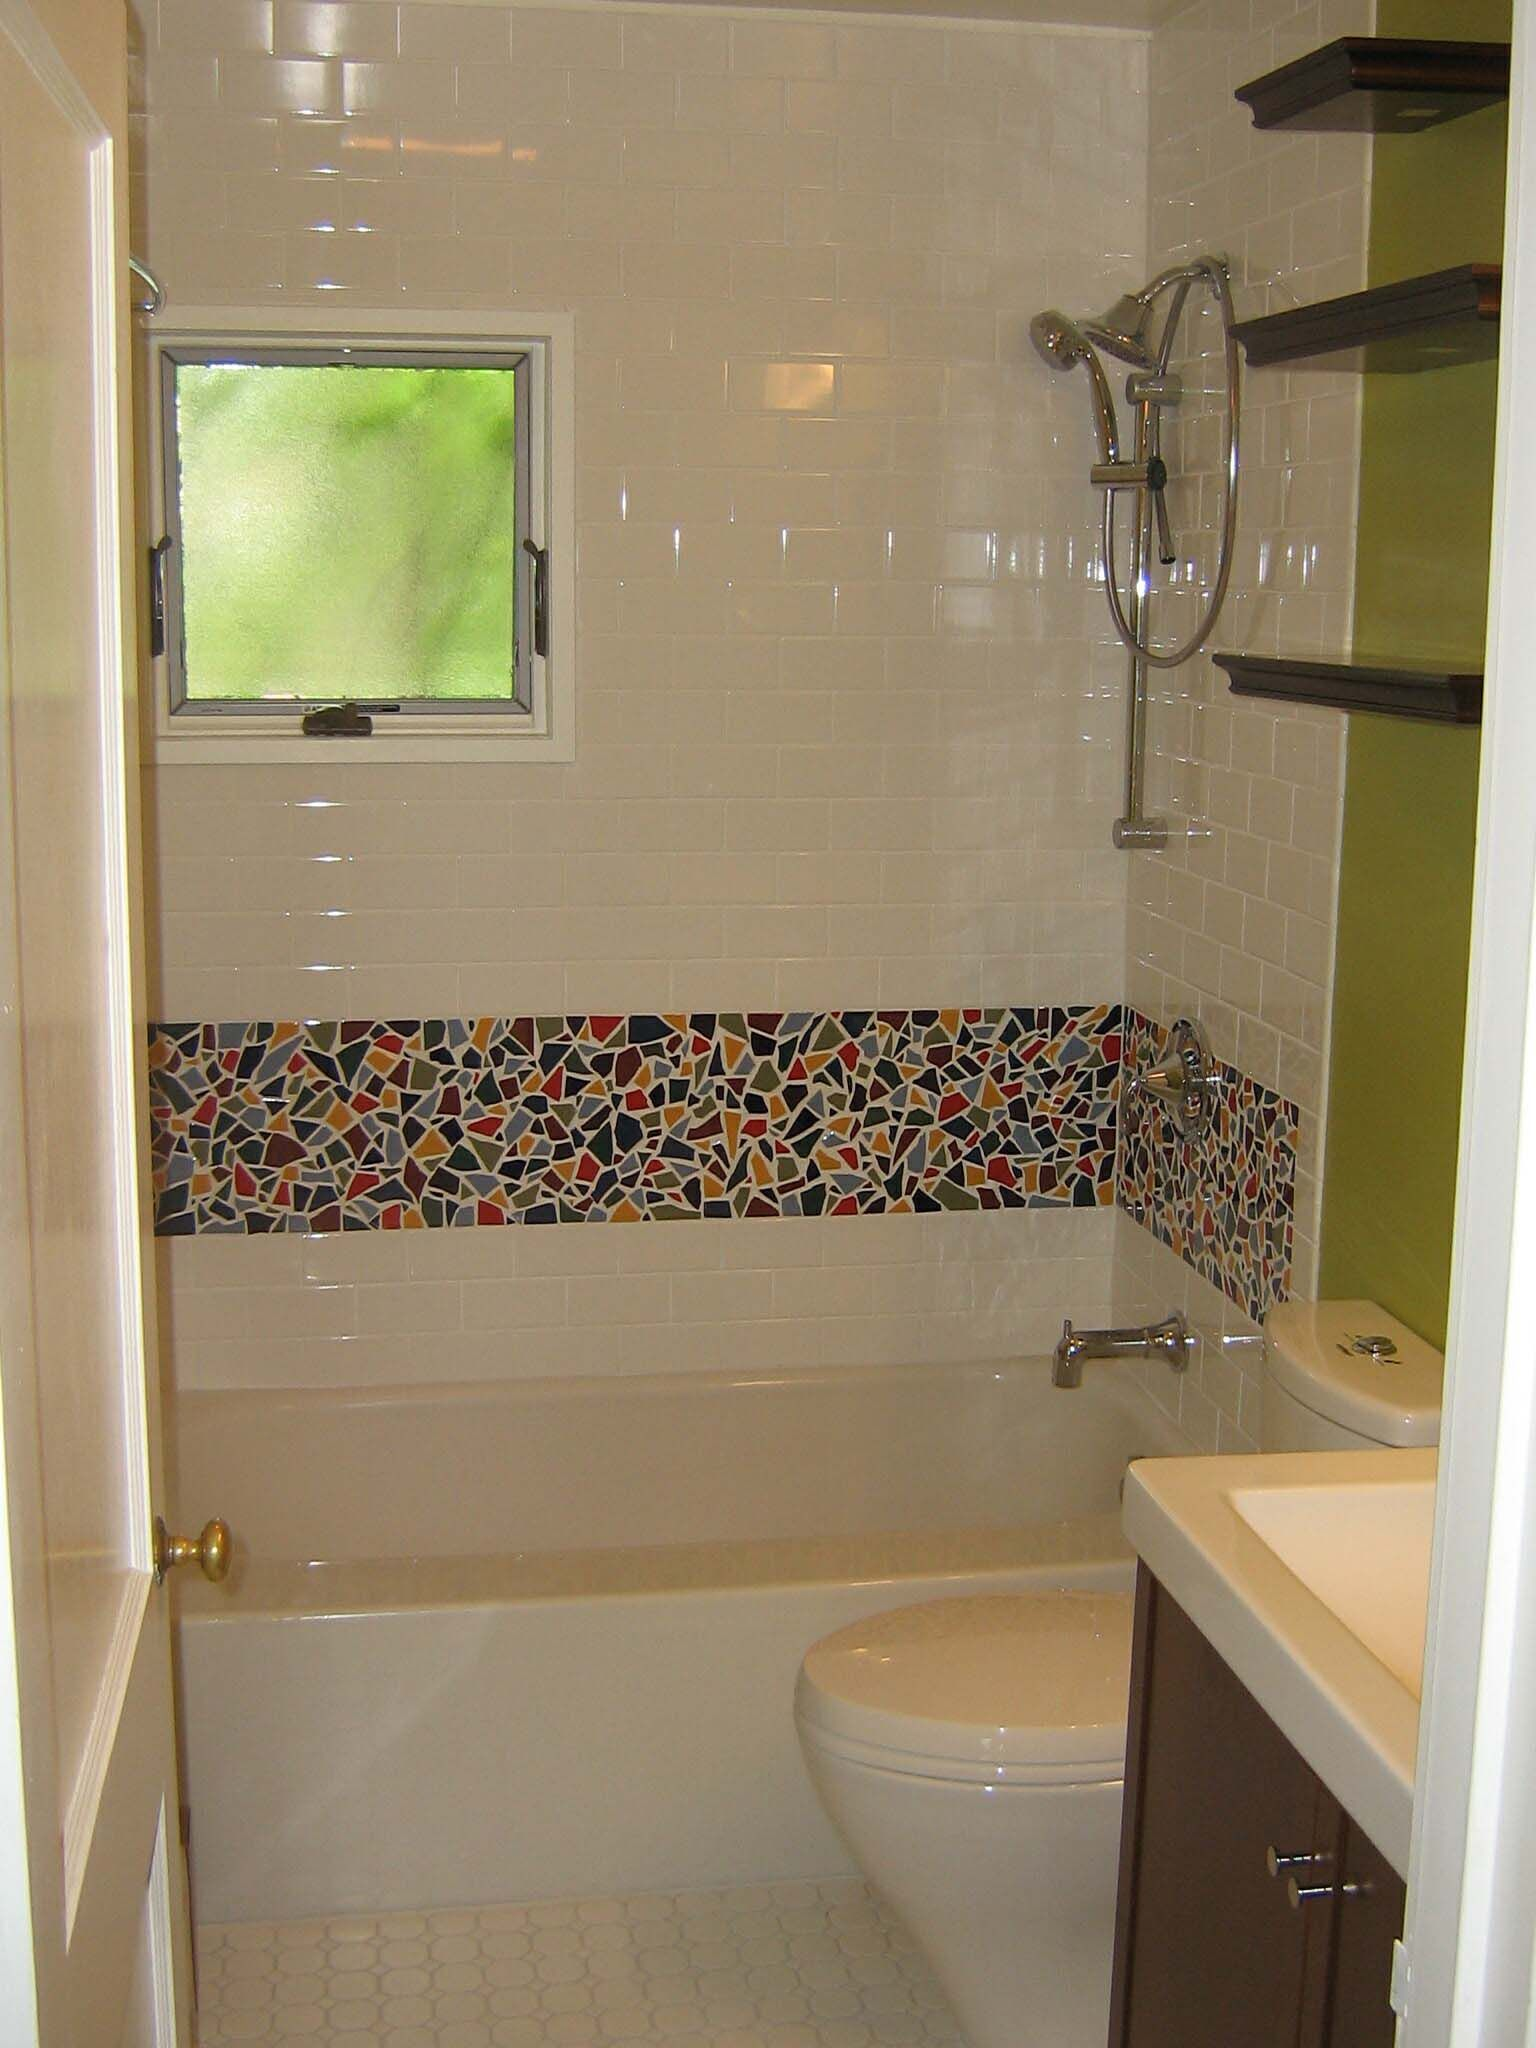 Fancy Bathroom Tile Border Application for Different